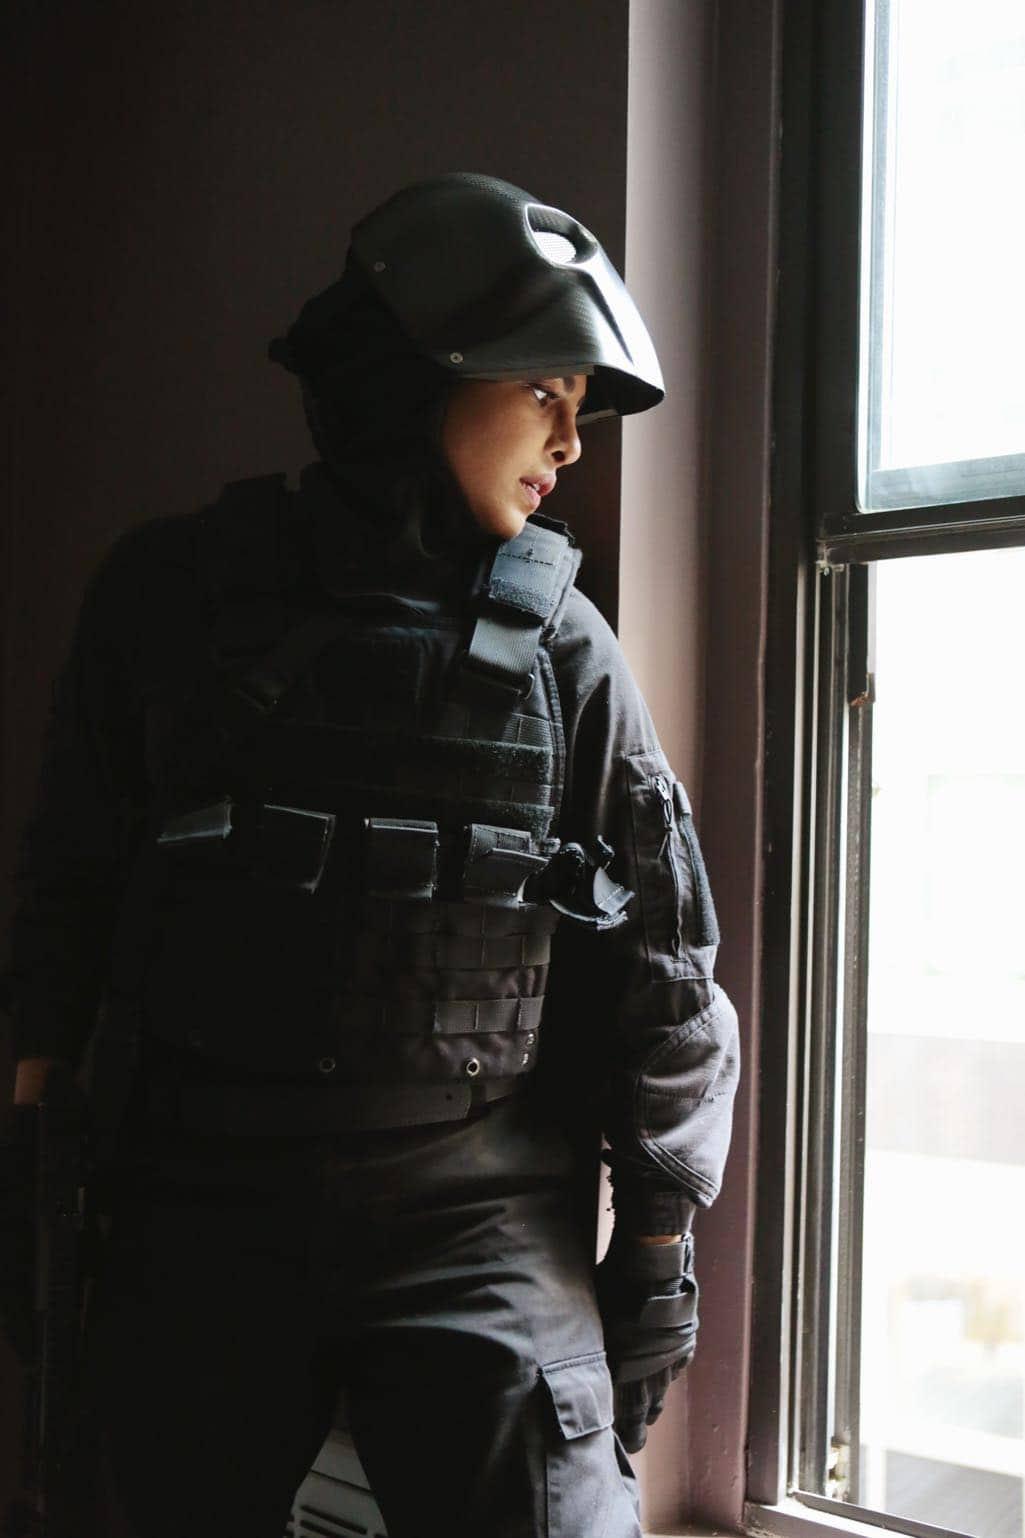 """QUANTICO - """"Kubark"""" - The trainees are put through a training drill that tests their stress levels while Alex tries to gather information and get close to Owen. Meanwhile, in the future, the terrorist organization demands a trade, a move that could possibly end the stand-off, on """"Quantico,"""" airing SUNDAY, OCTOBER 23 (10:00-11:00 p.m. EDT), on the ABC Television Network. (ABC/Giovanni Rufino) PRIYANKA CHOPRA"""